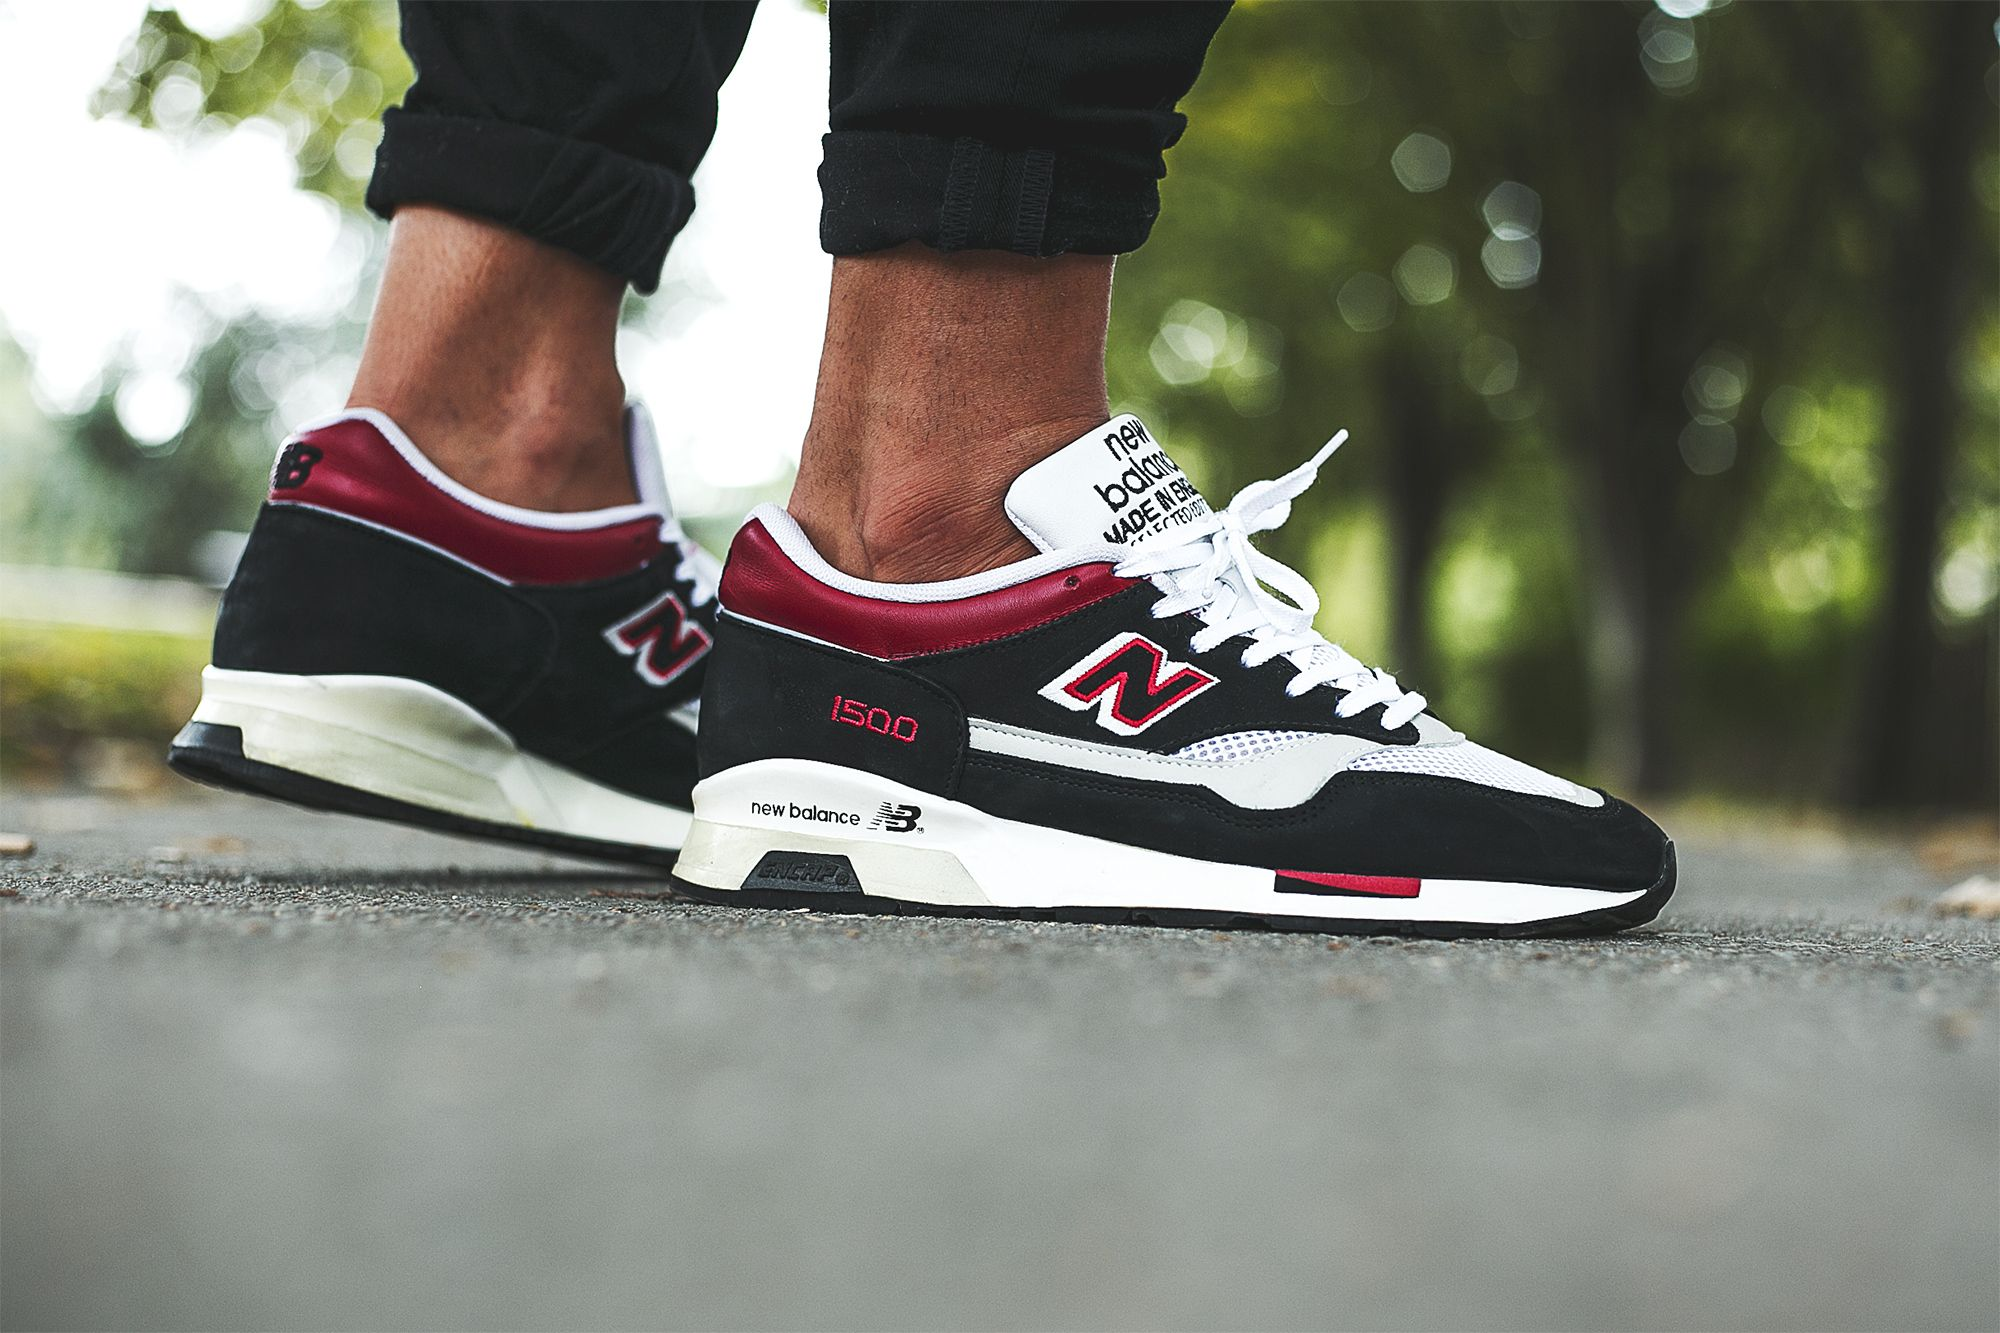 New Balance 1500 BWR 2016 Retro | Sneakers men, New balance ...